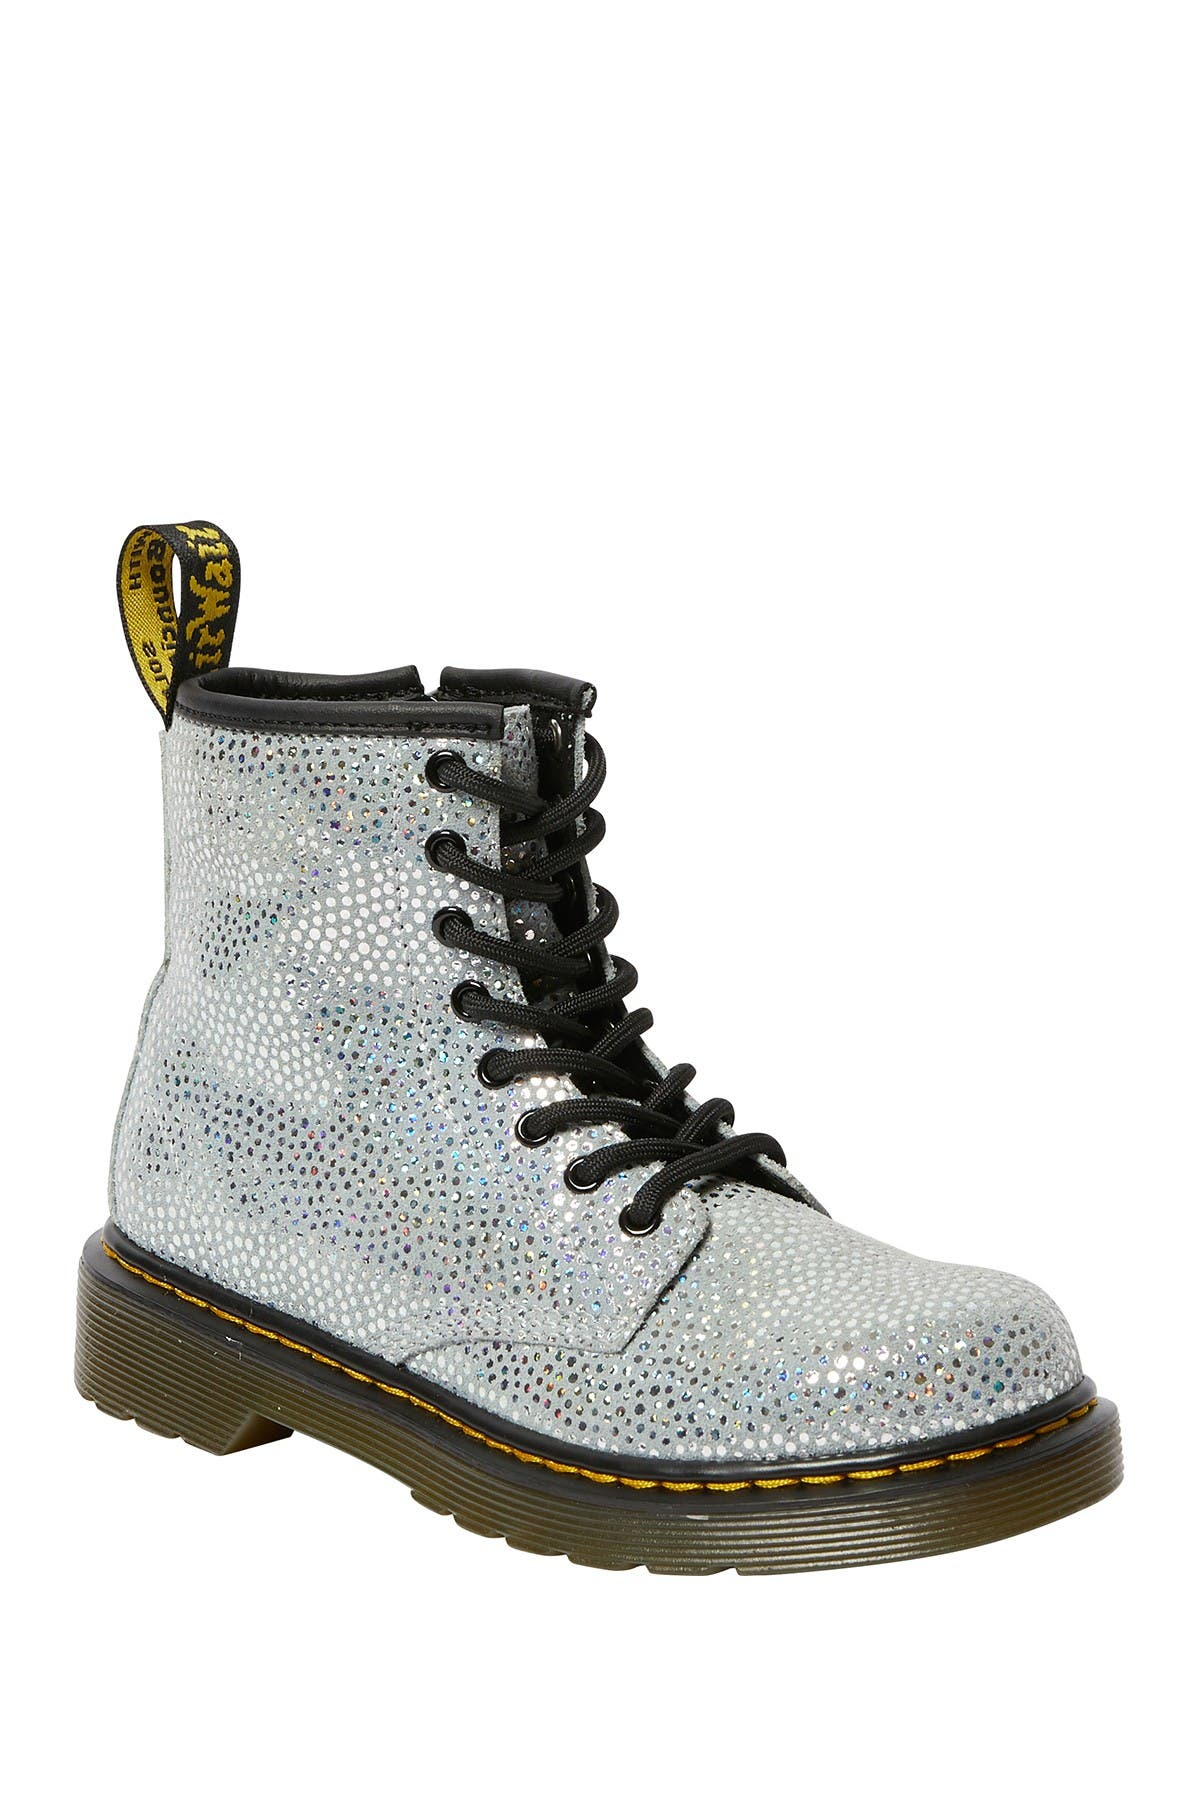 Image of Dr. Martens 1460 Junior Boot